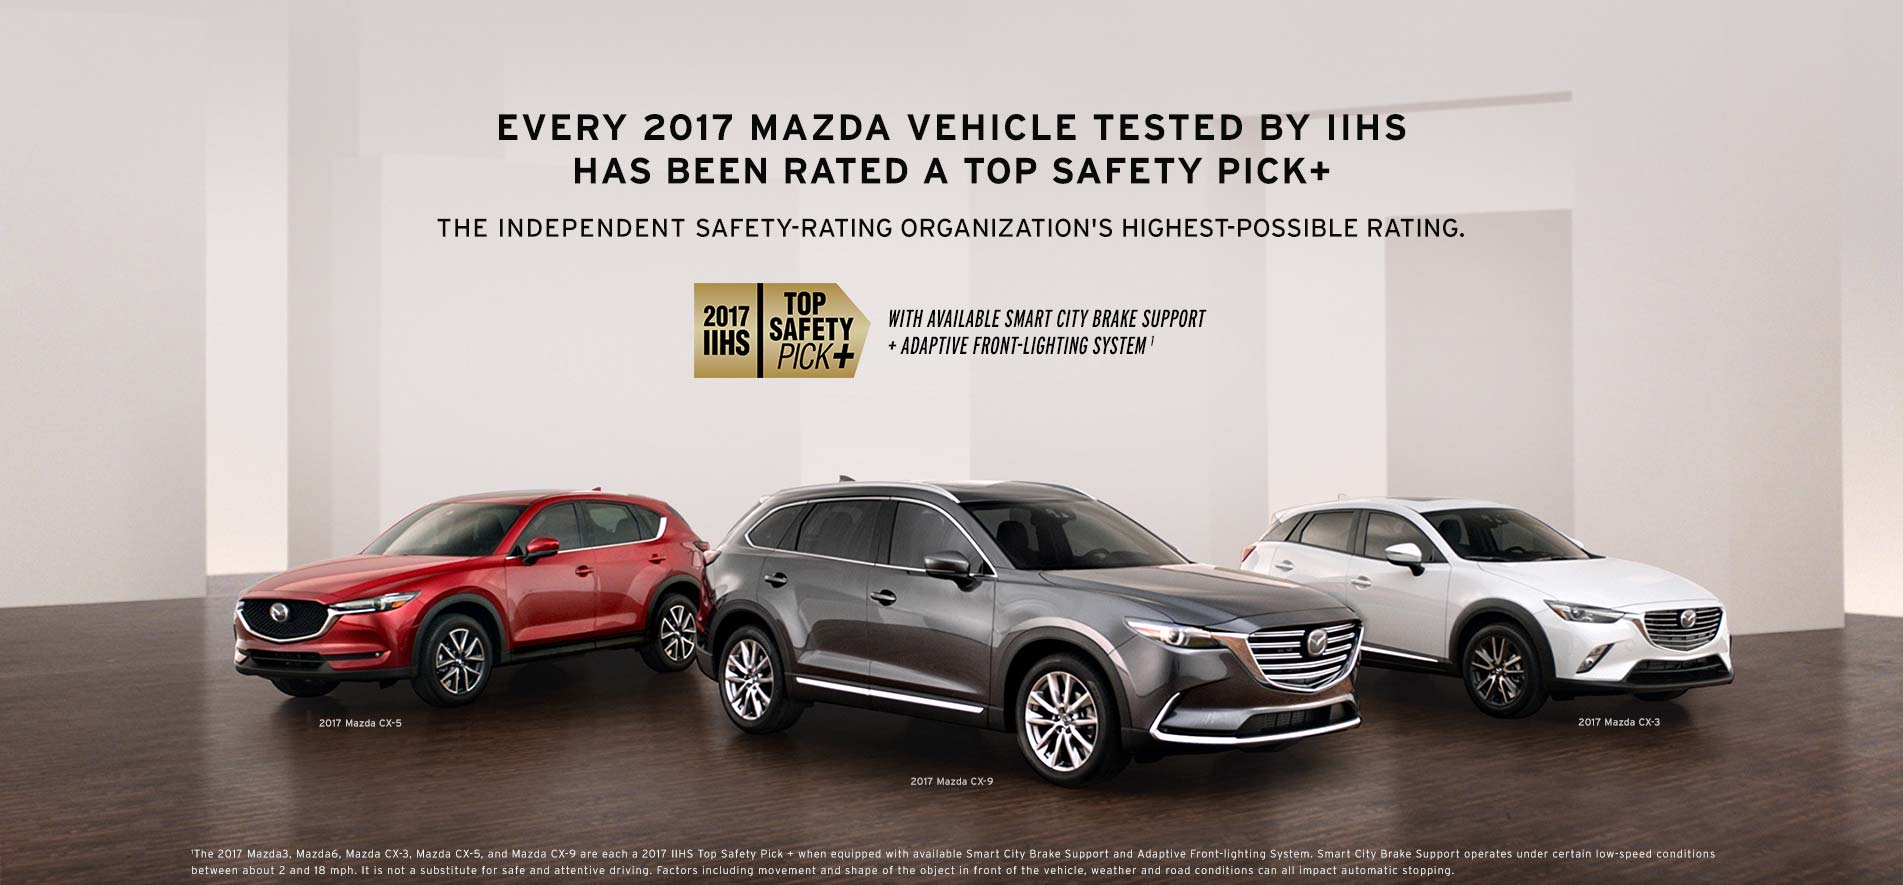 FIVE MAZDAS. FIVE TOP SAFETY PICK PLUS RATINGS